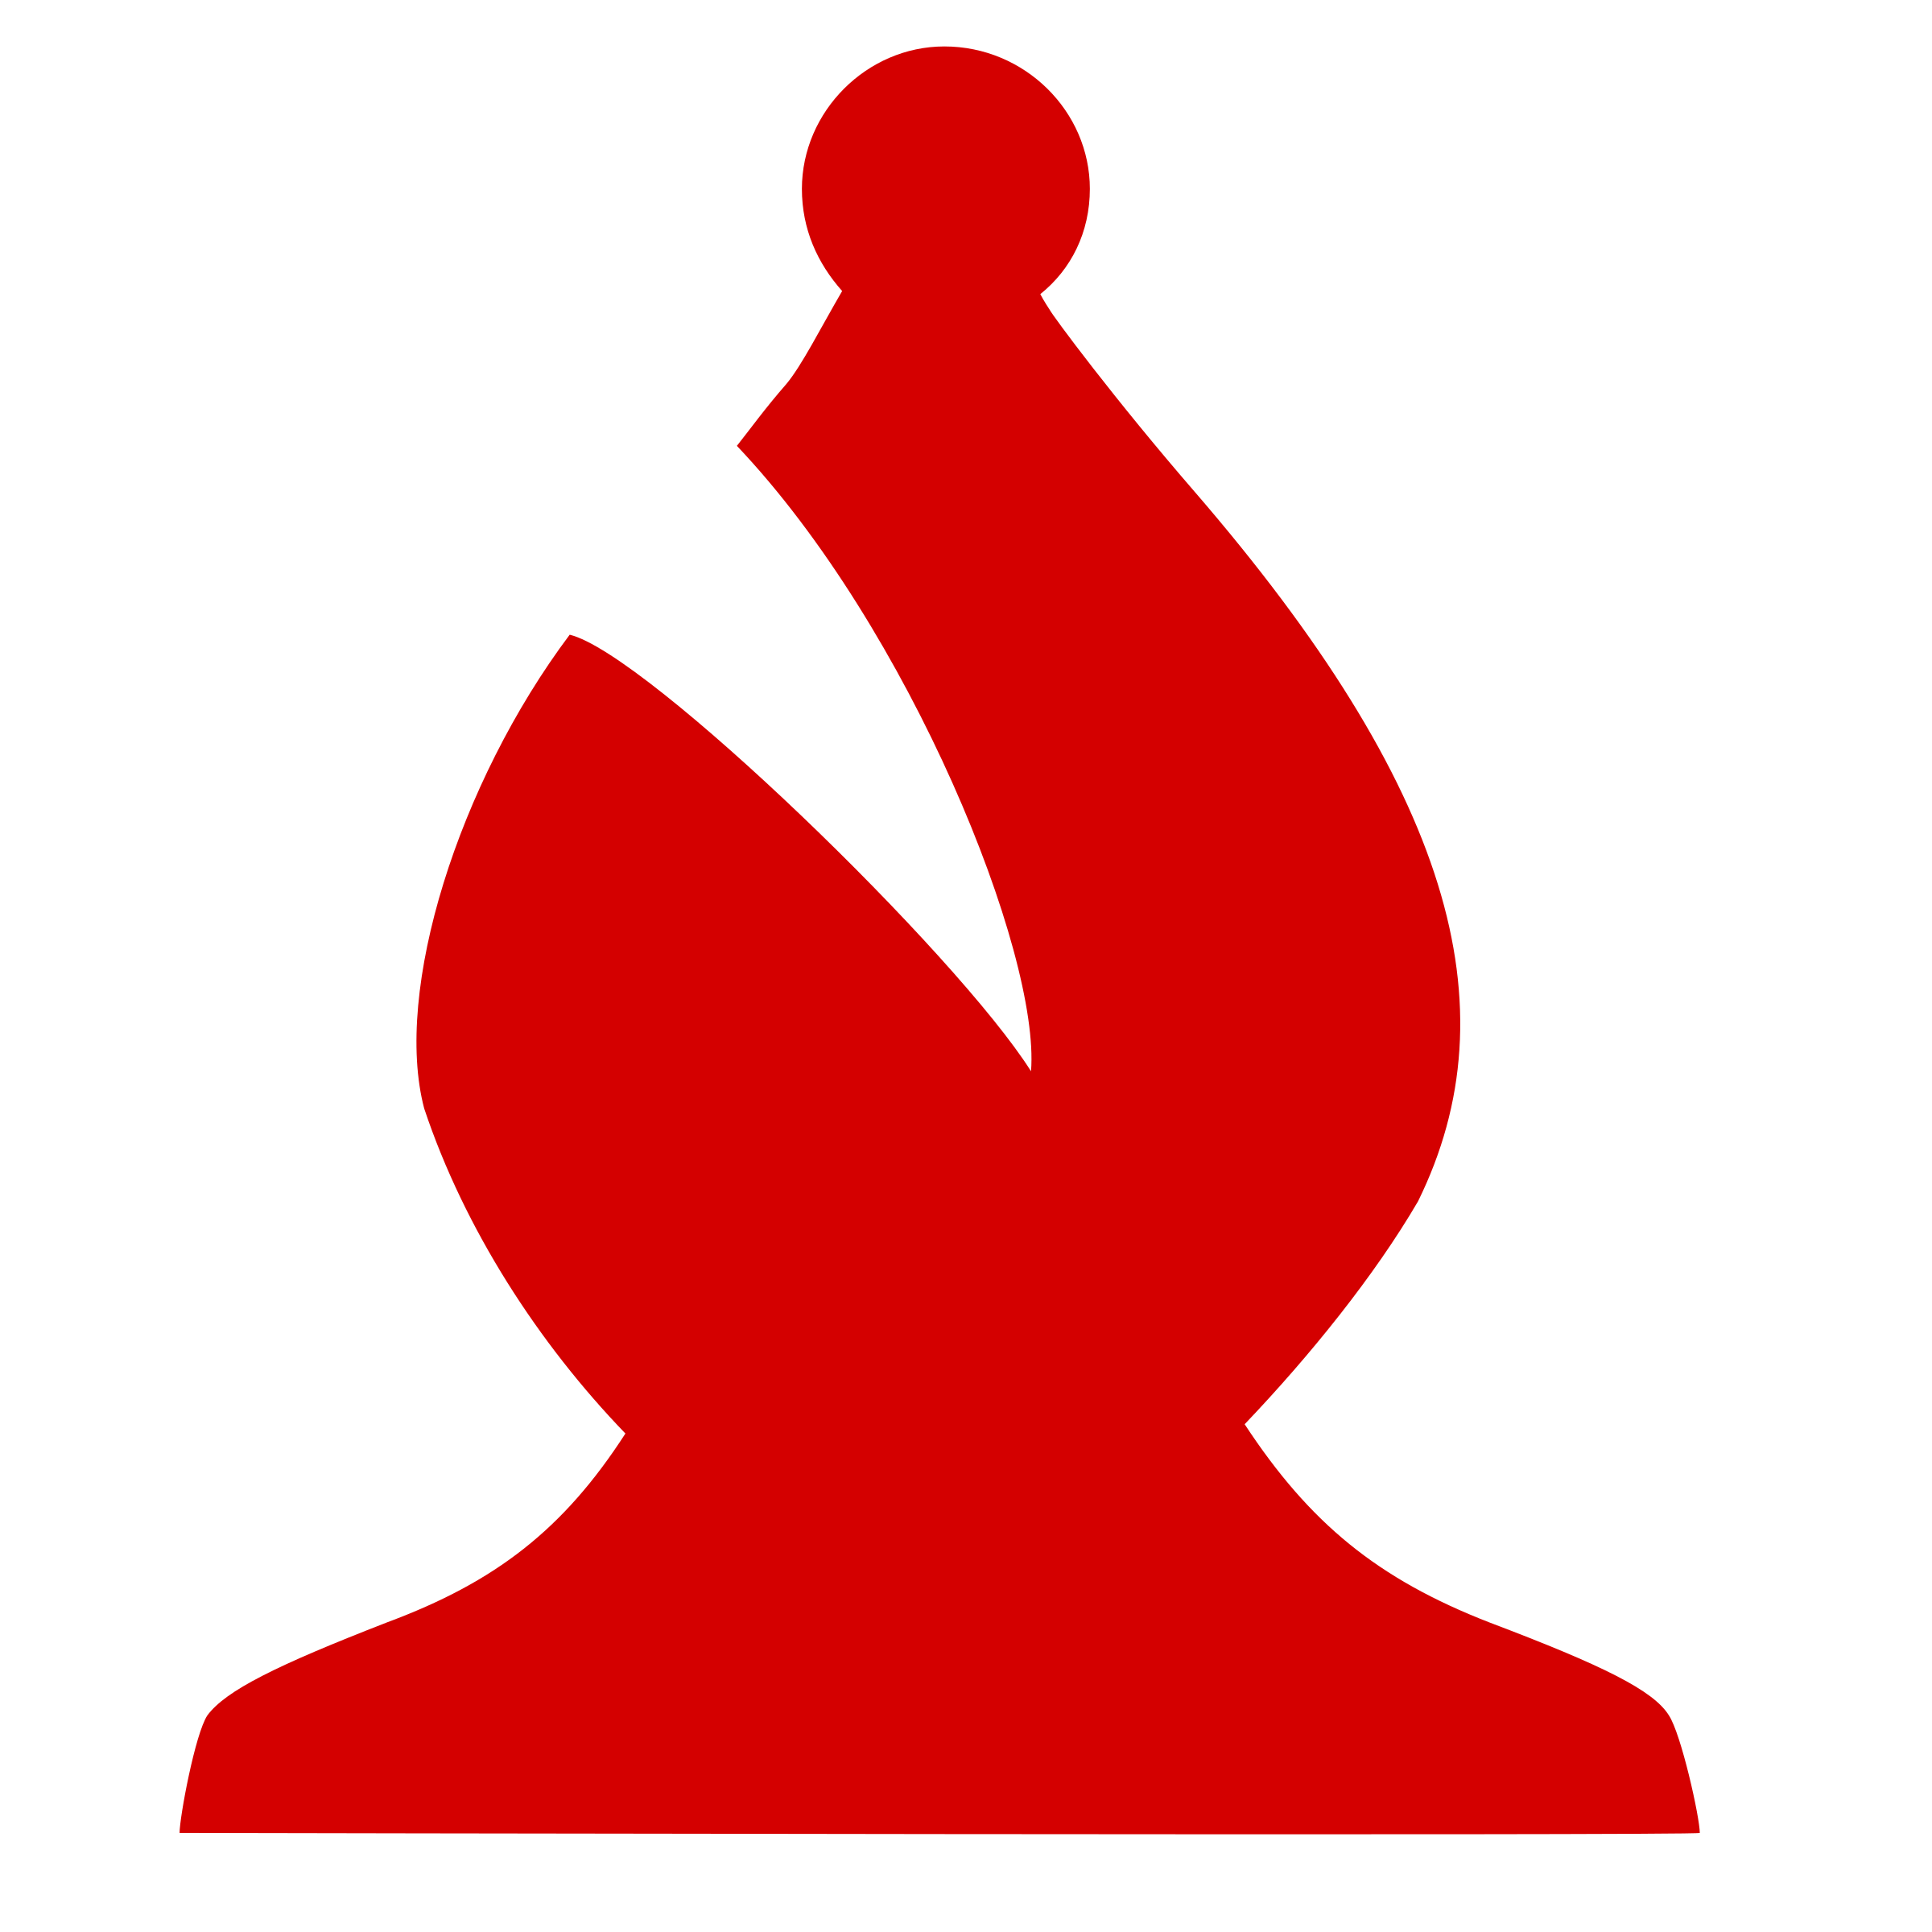 Chess Piece Silhouette - Red Bishop / Alfil Rojo by DG-RA